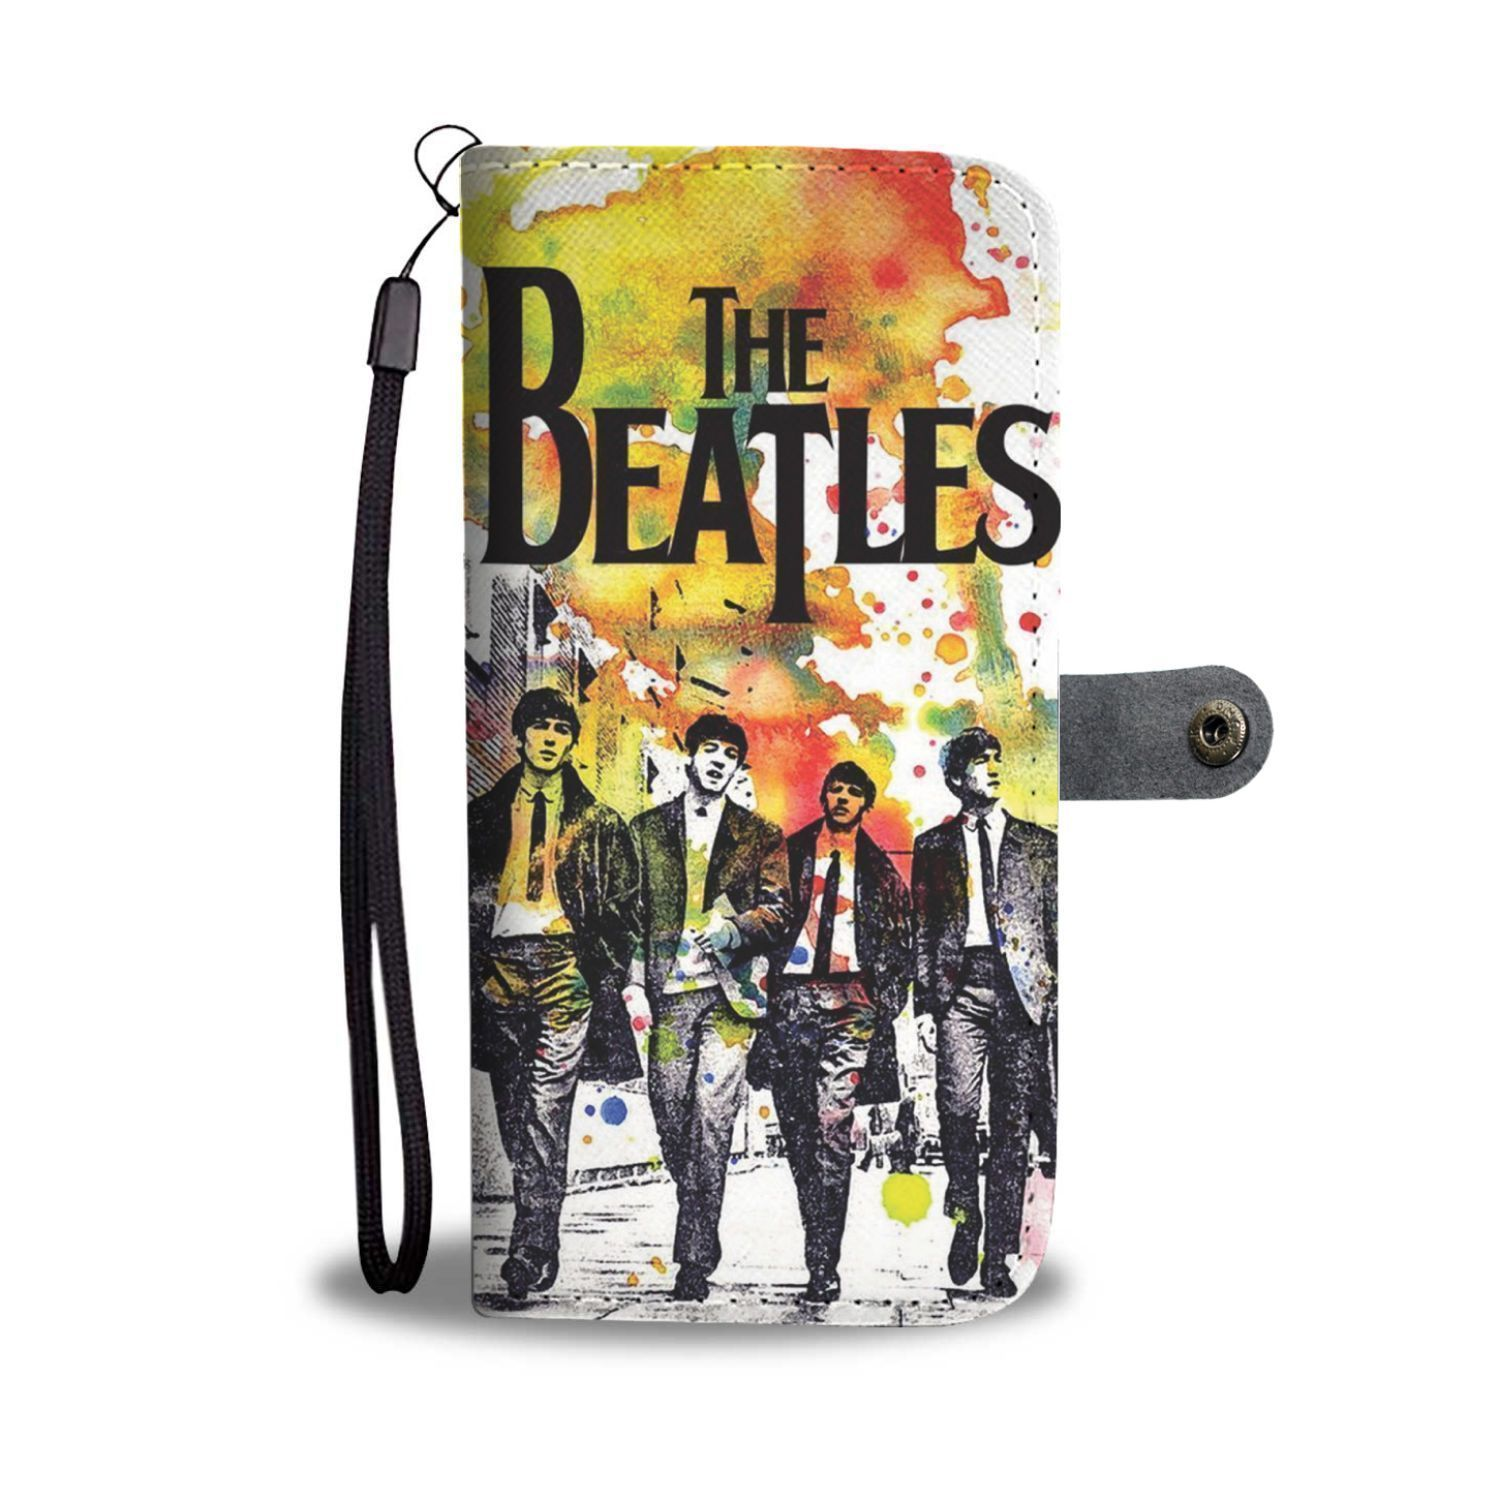 The Beatles Watermark Wallet Phone Case Nfl t shirts